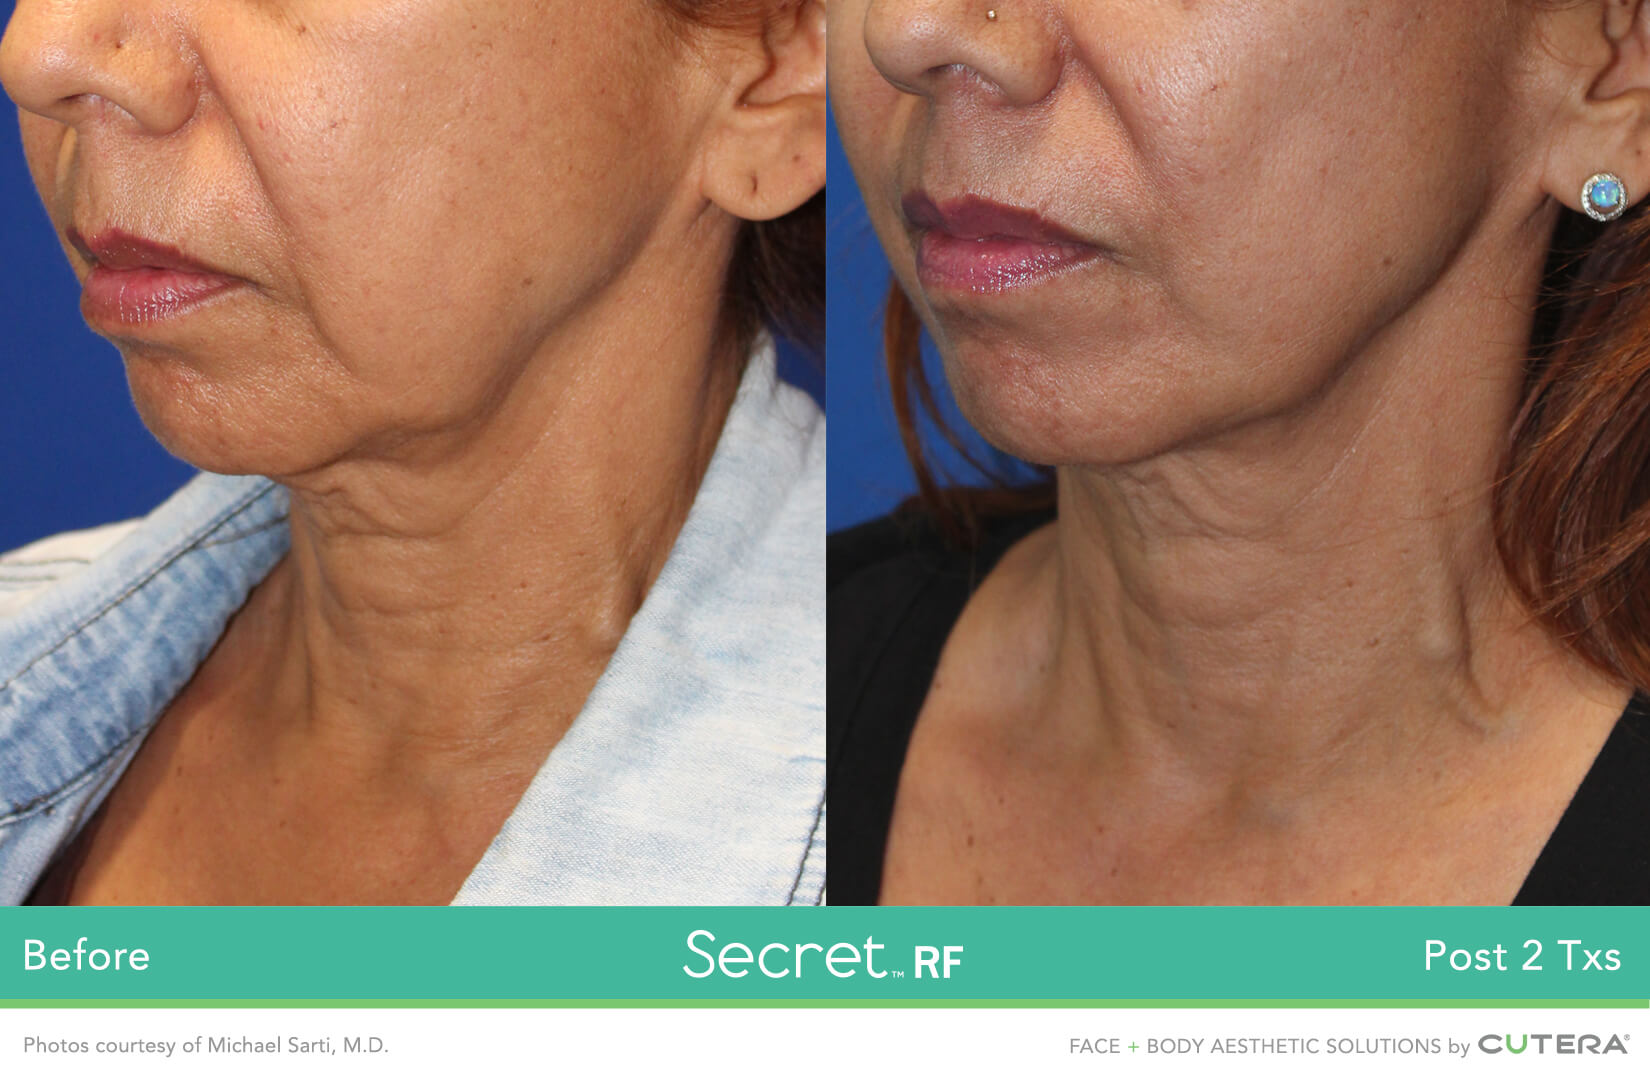 Before and After of a skin resurfacing treatment on the cheeks, chin and necks using the Secret RF Device after 2 treatments.